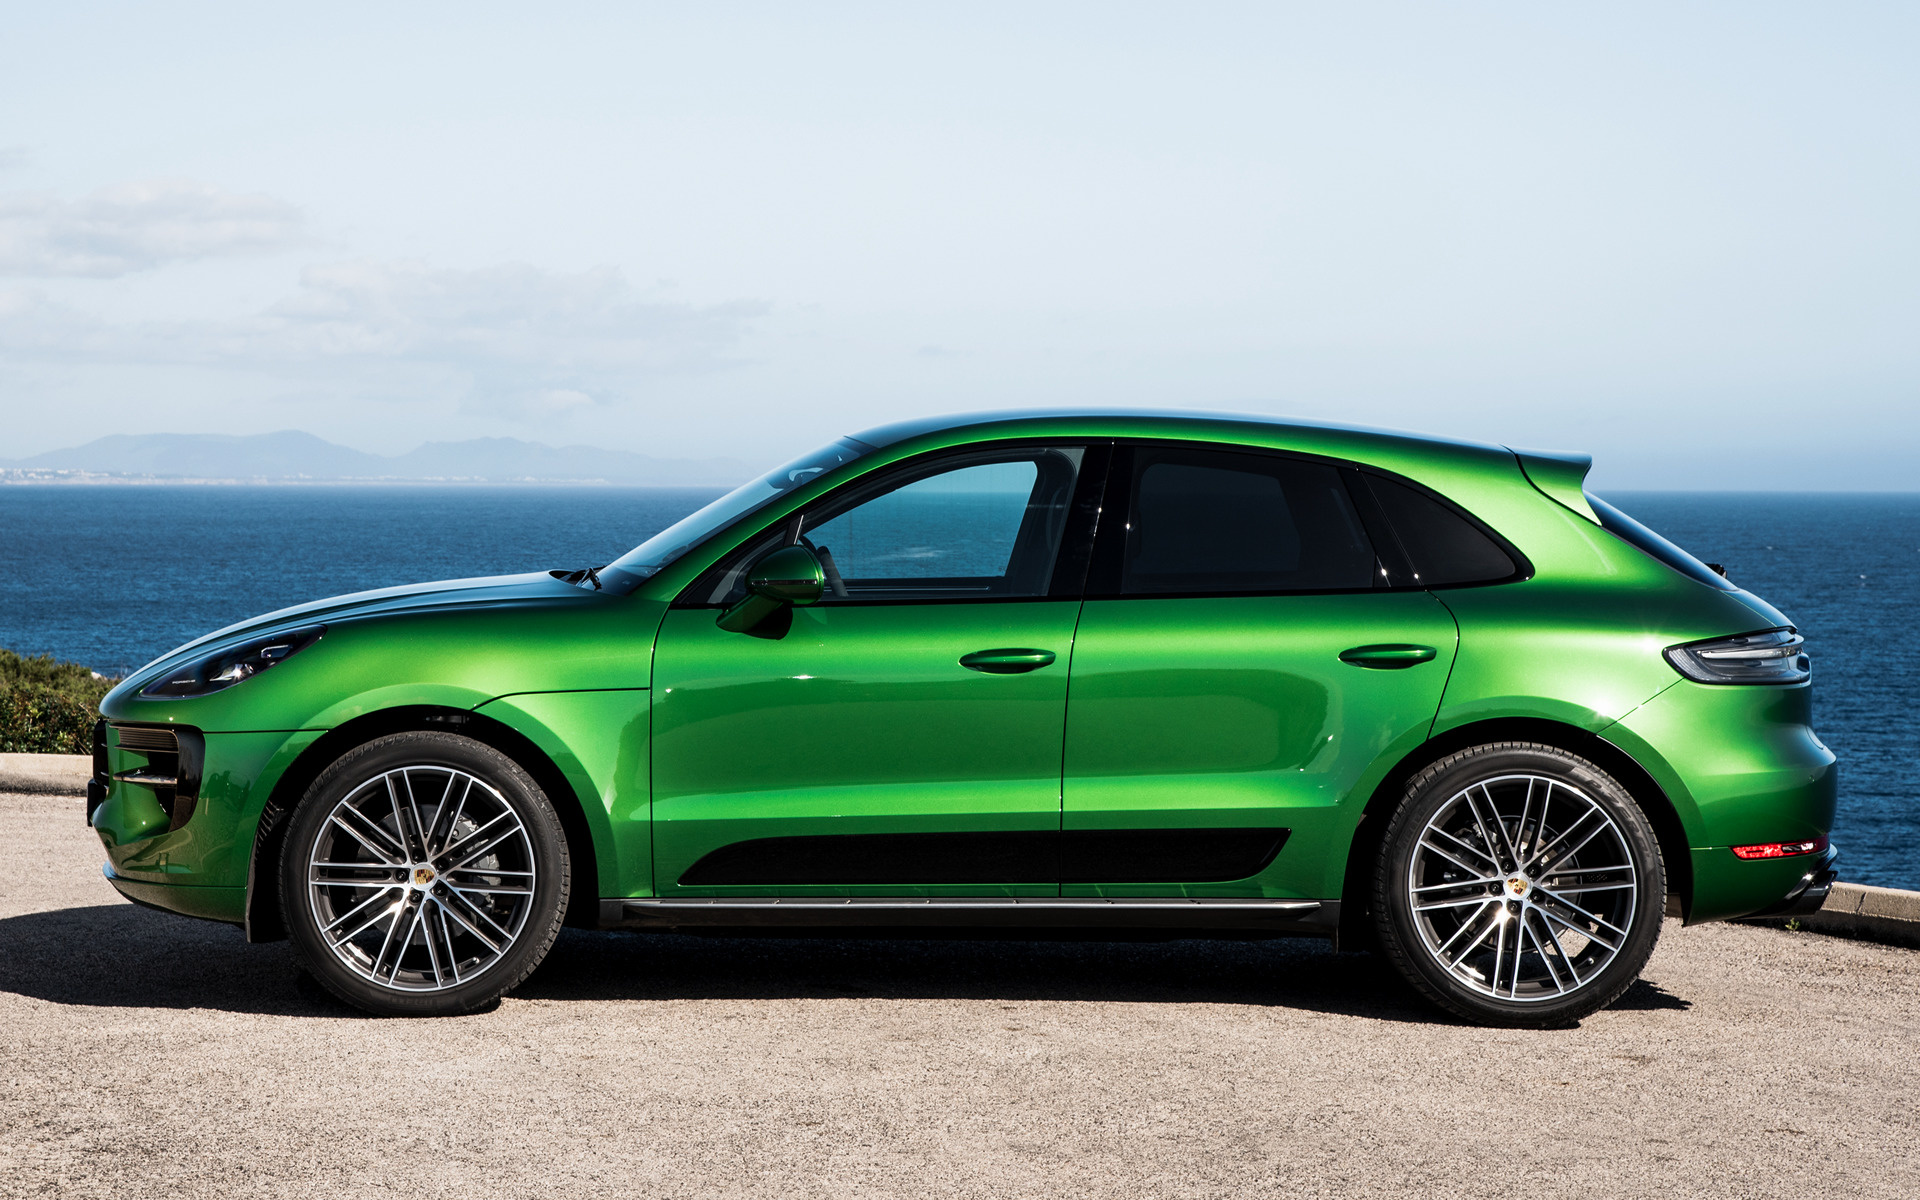 Porsche Macan S Sportdesign Package 2018 Wallpapers And Hd Images